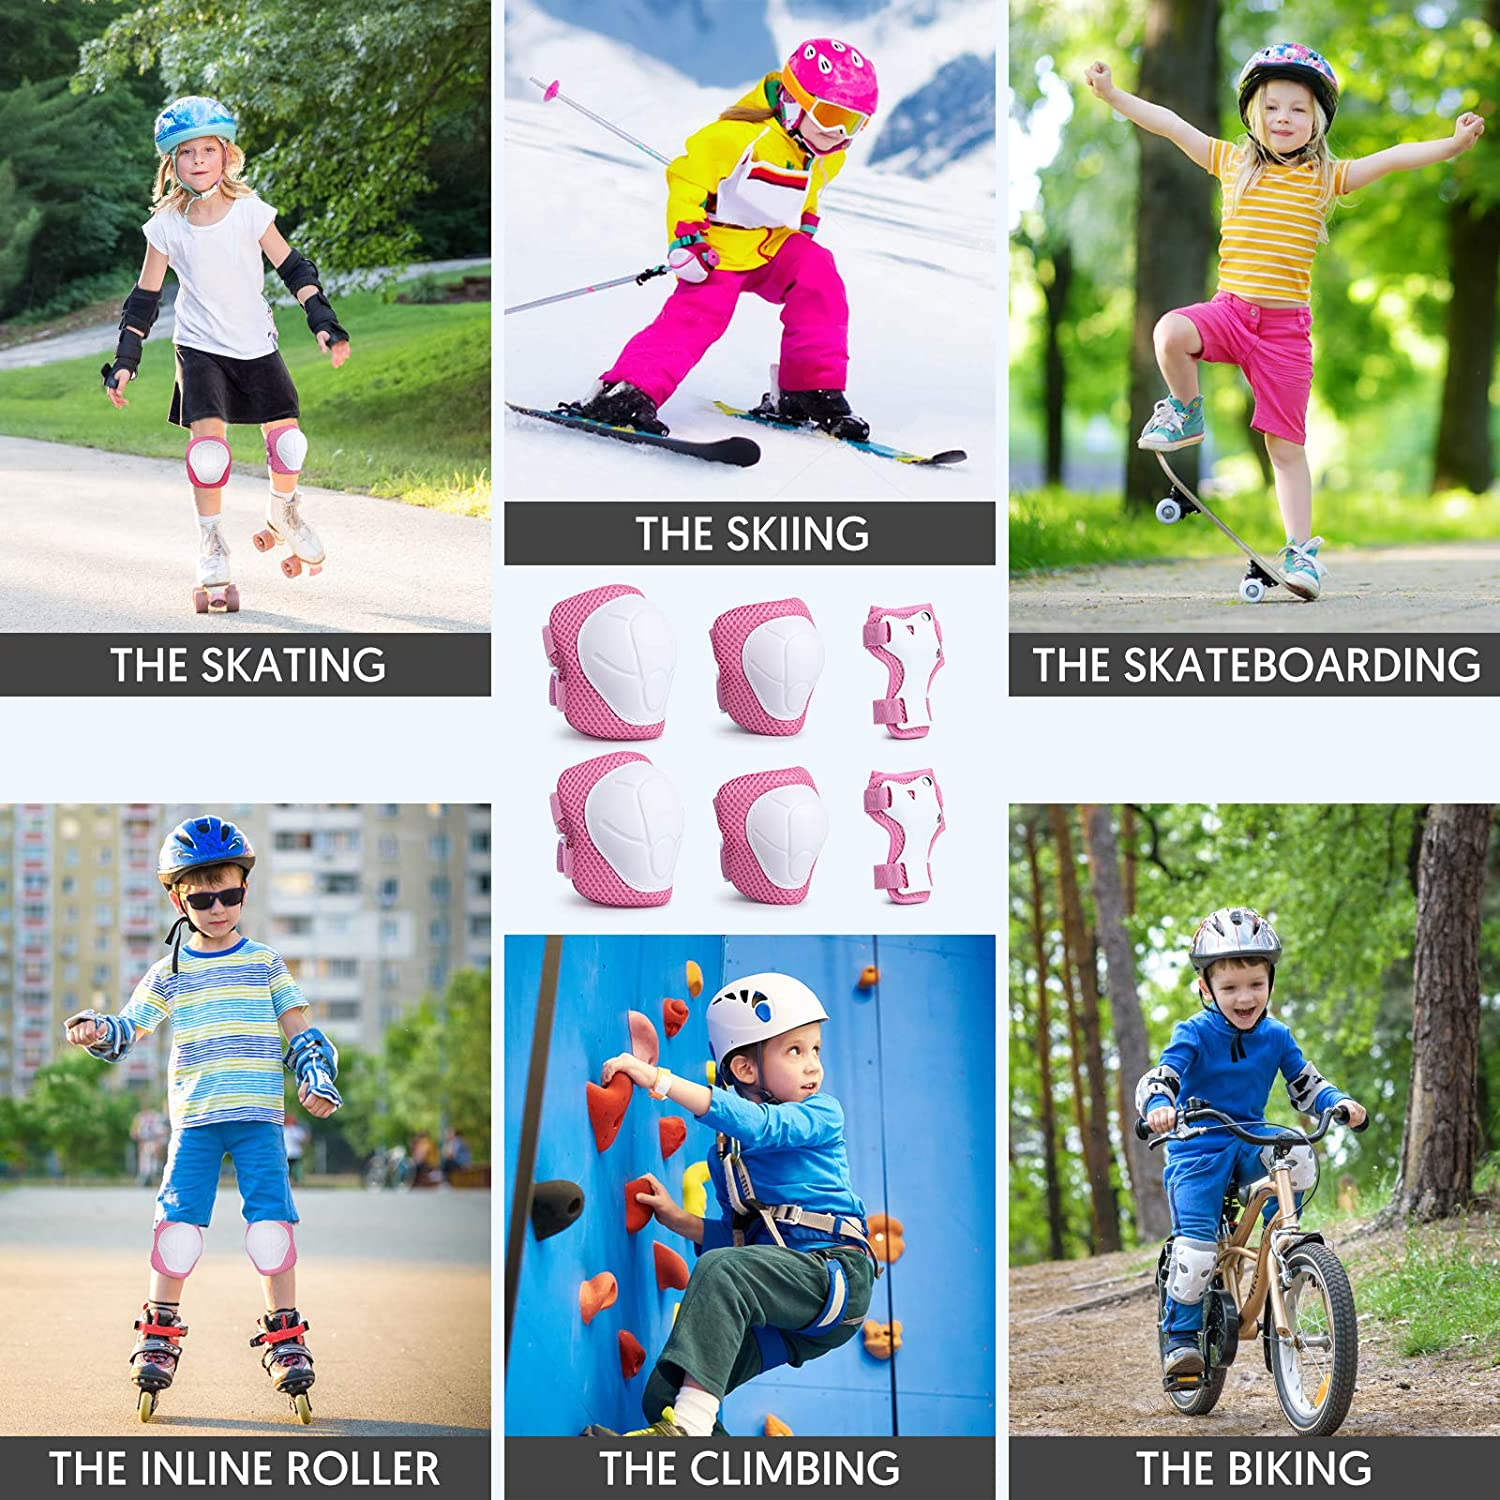 Toddler Knee Pads and Elbow Pads 6 in 1 Set with Wrist Guard for Skating Cycling Bike Rollerblading Scooter Skateboard Inline Scooter Riding Sport Xsiyu Kids Protective Gear